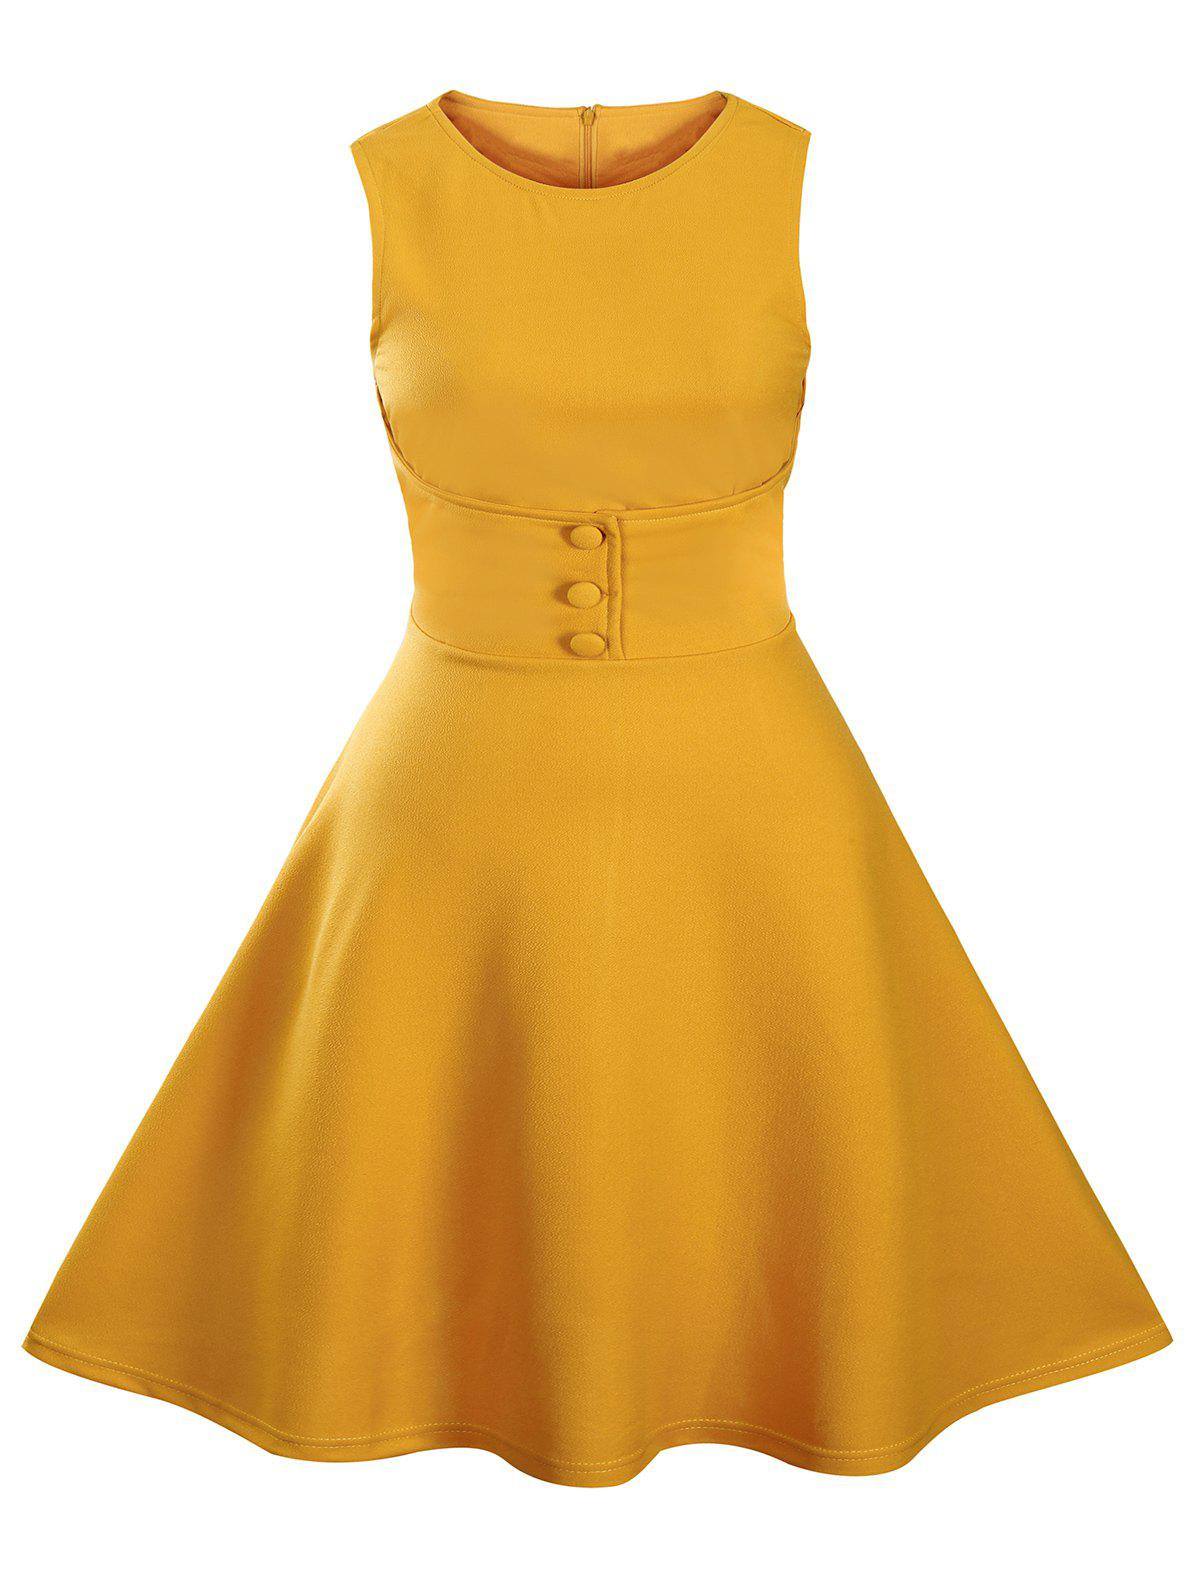 Buttoned Sleeveless Knee Length Vintage Dress - YELLOW S